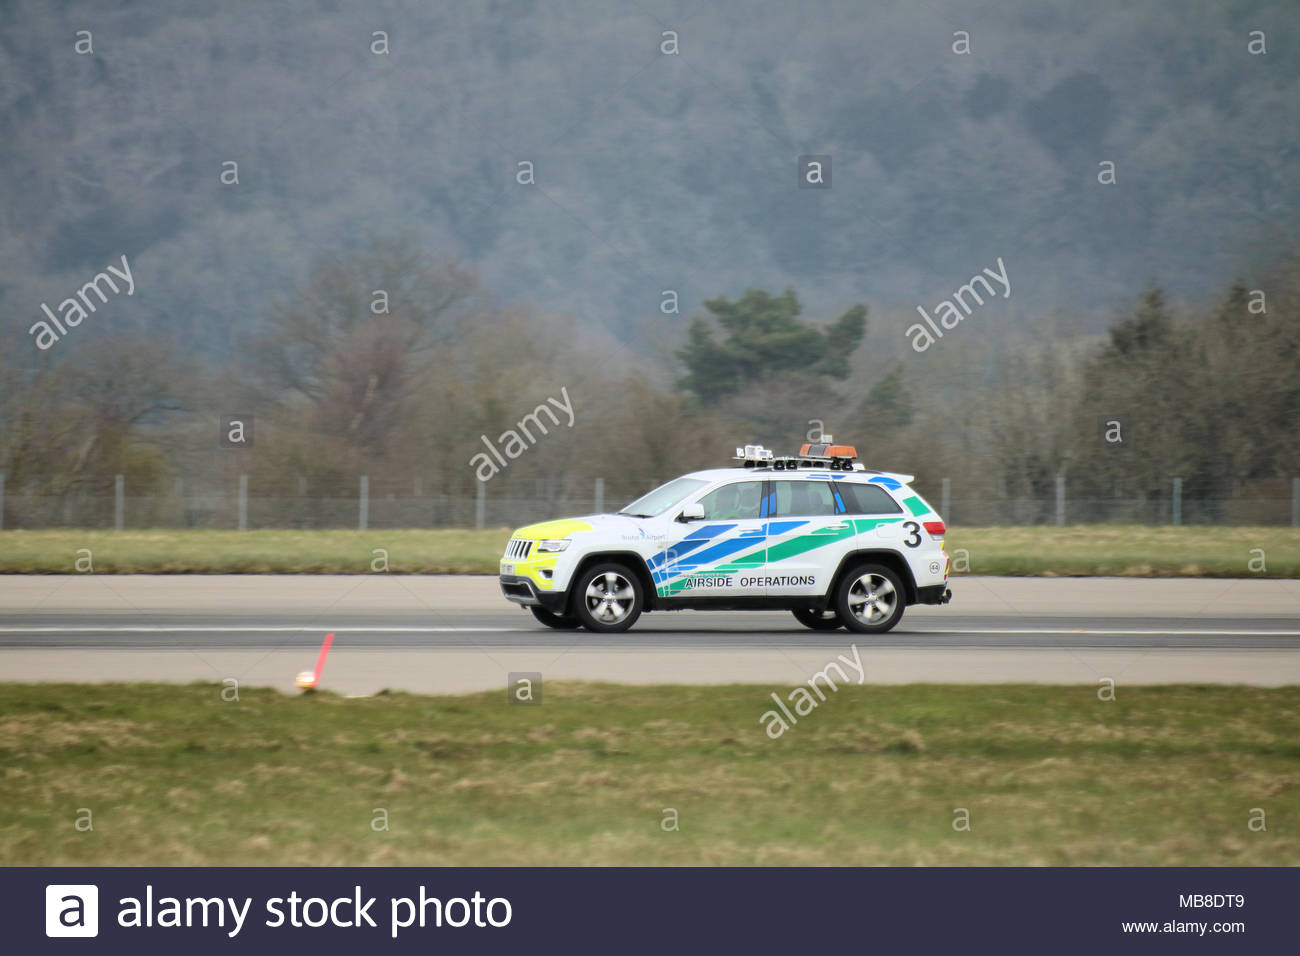 An Airfield Operations vehicle inspects the runway at Bristol Airport just before the next aircraft lands - Stock Image